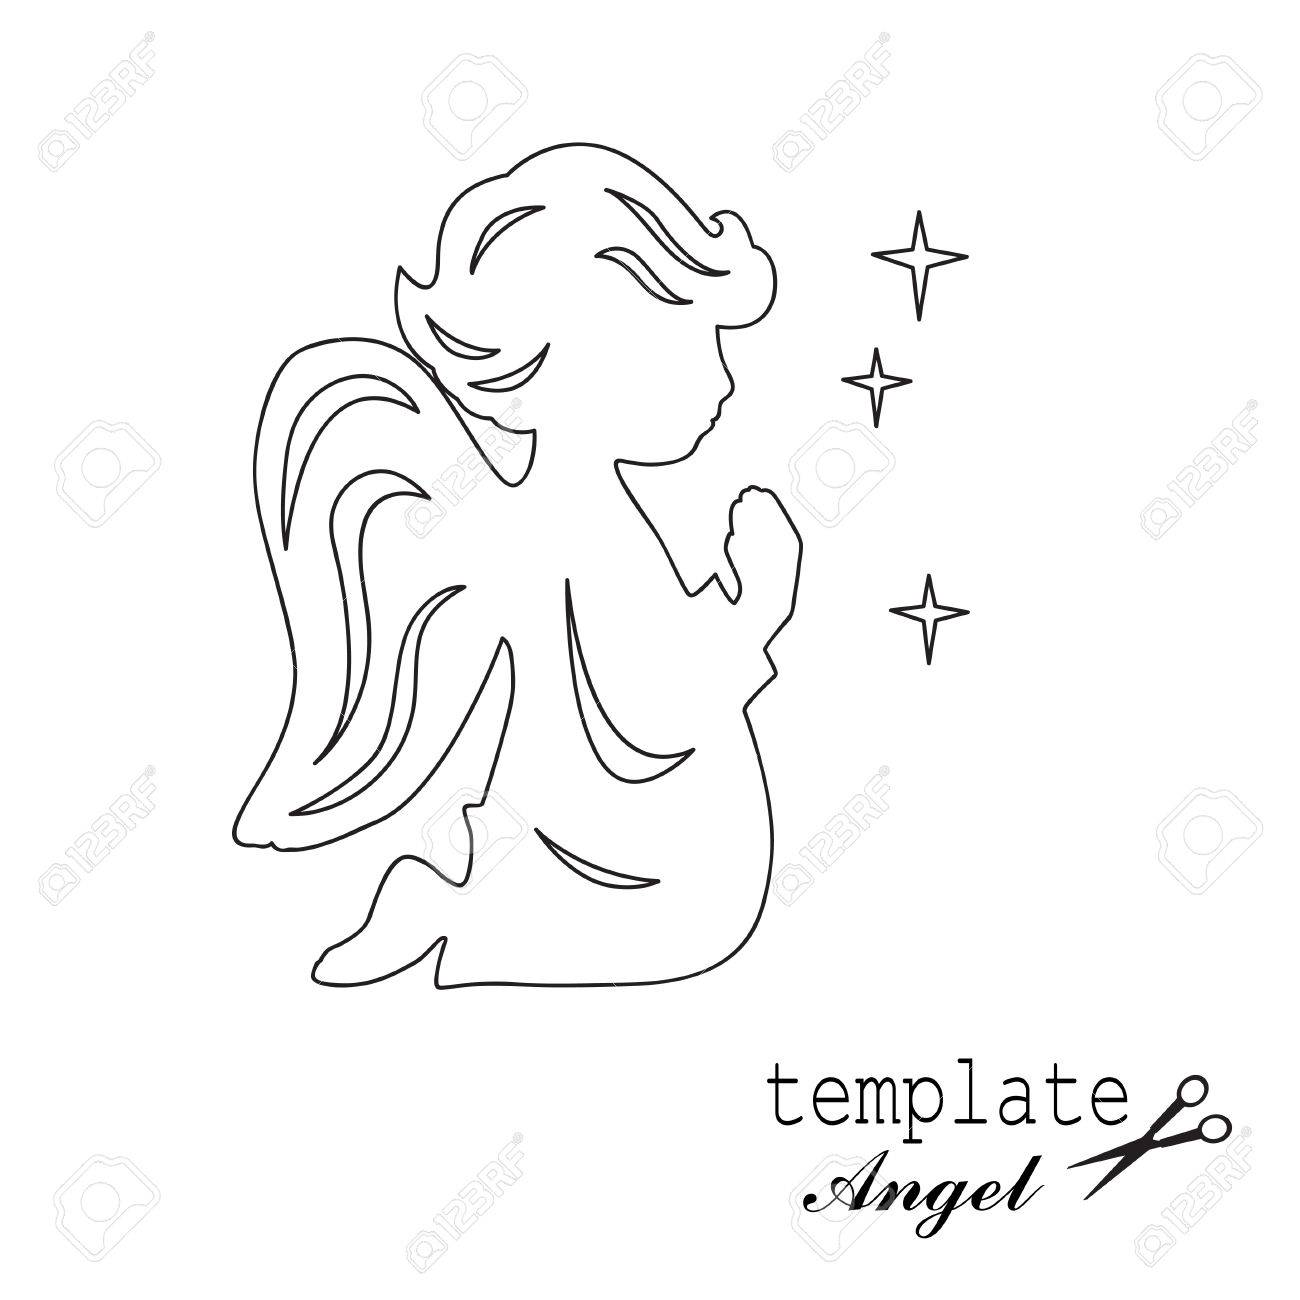 1300x1300 Template Angel For Cut Of Laser Or Engraved. Stencil For Paper